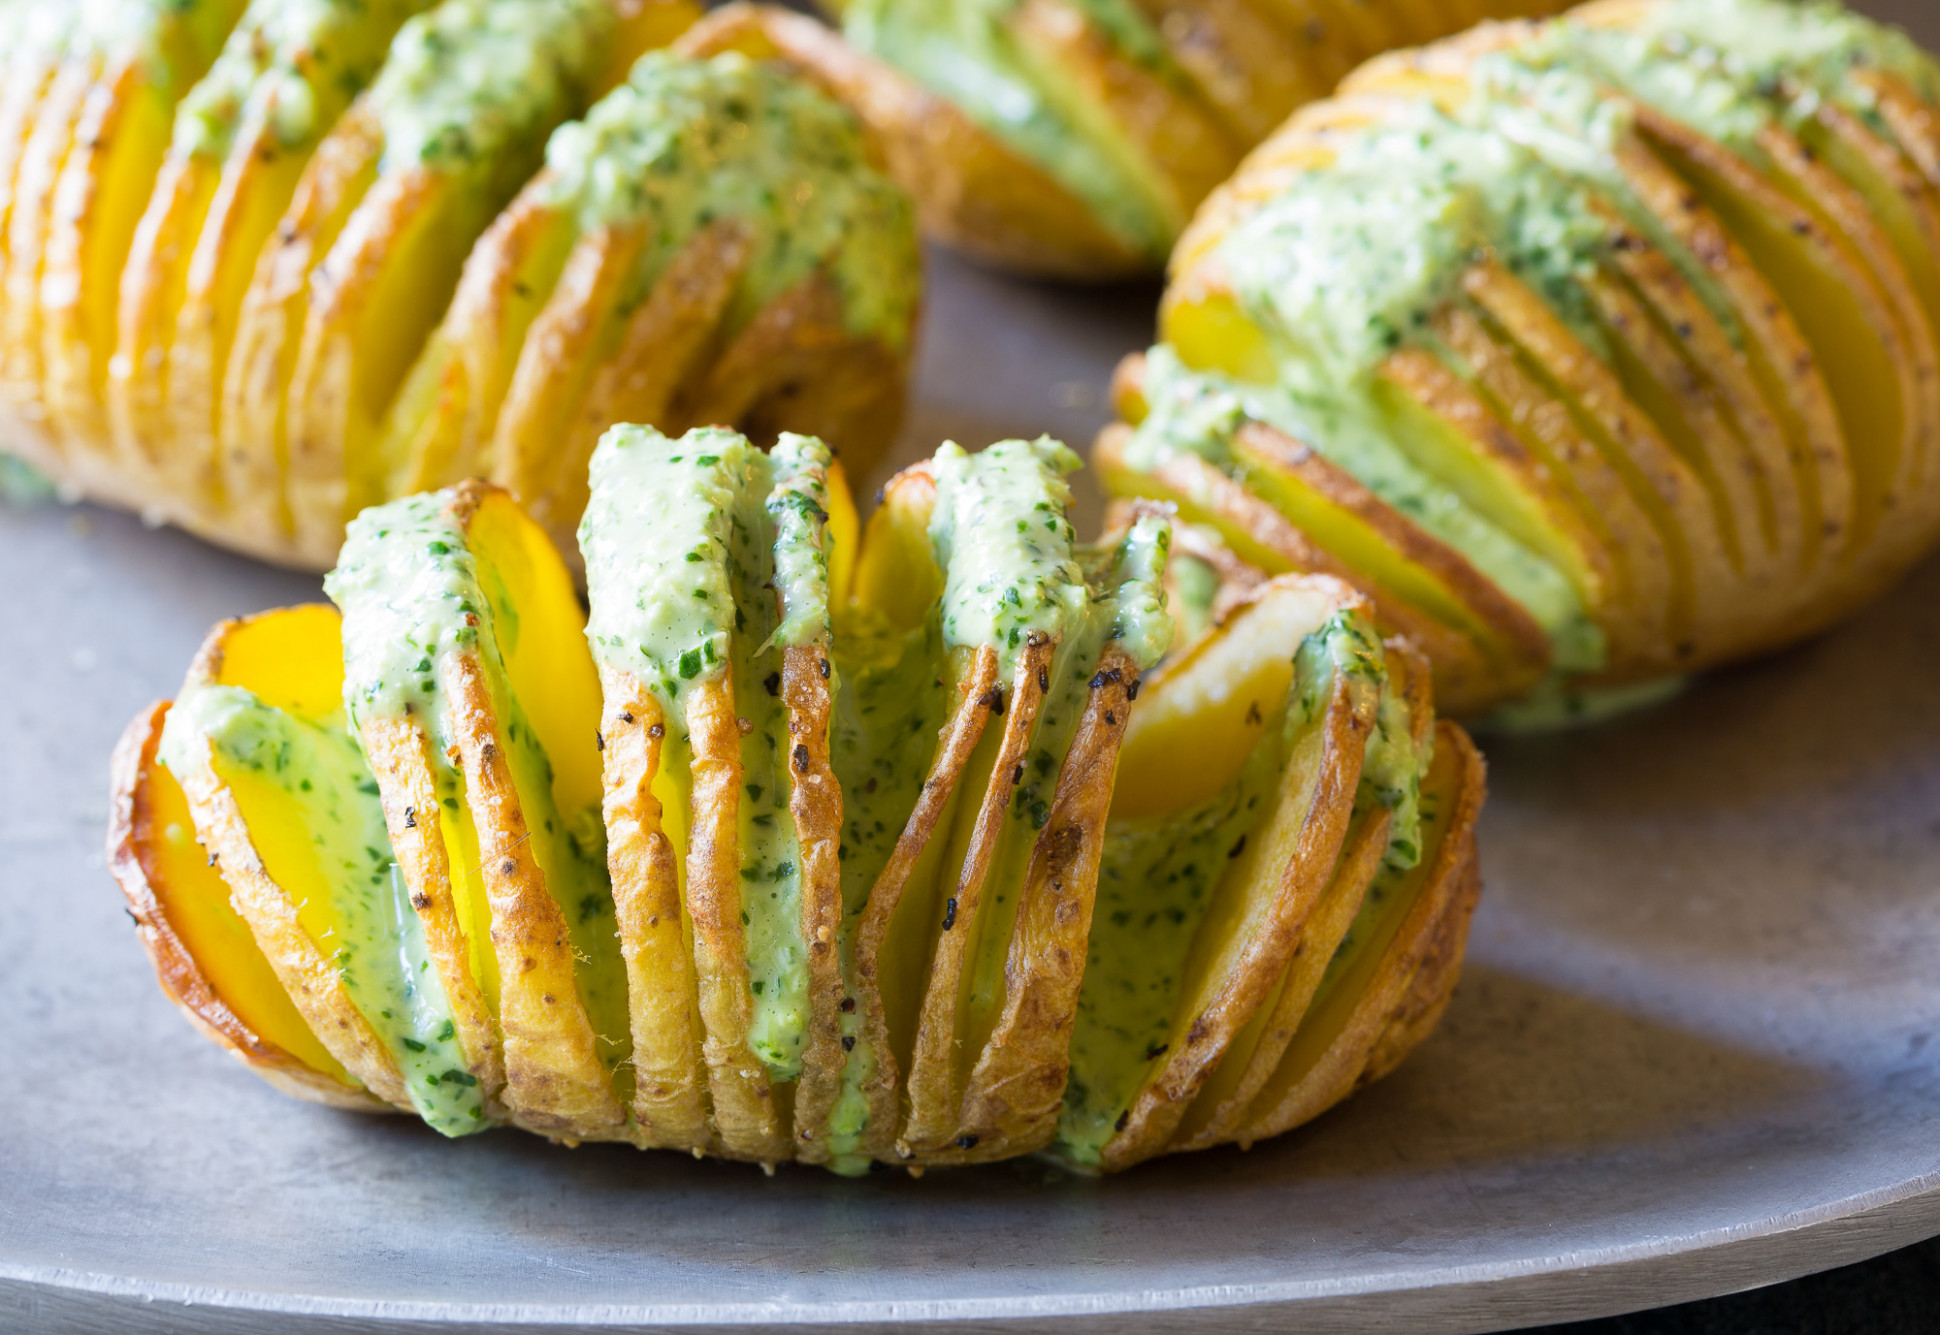 Crispy Hasselback Potatoes with Jalapeno Cilantro Sauce - recipes pioneer woman food network